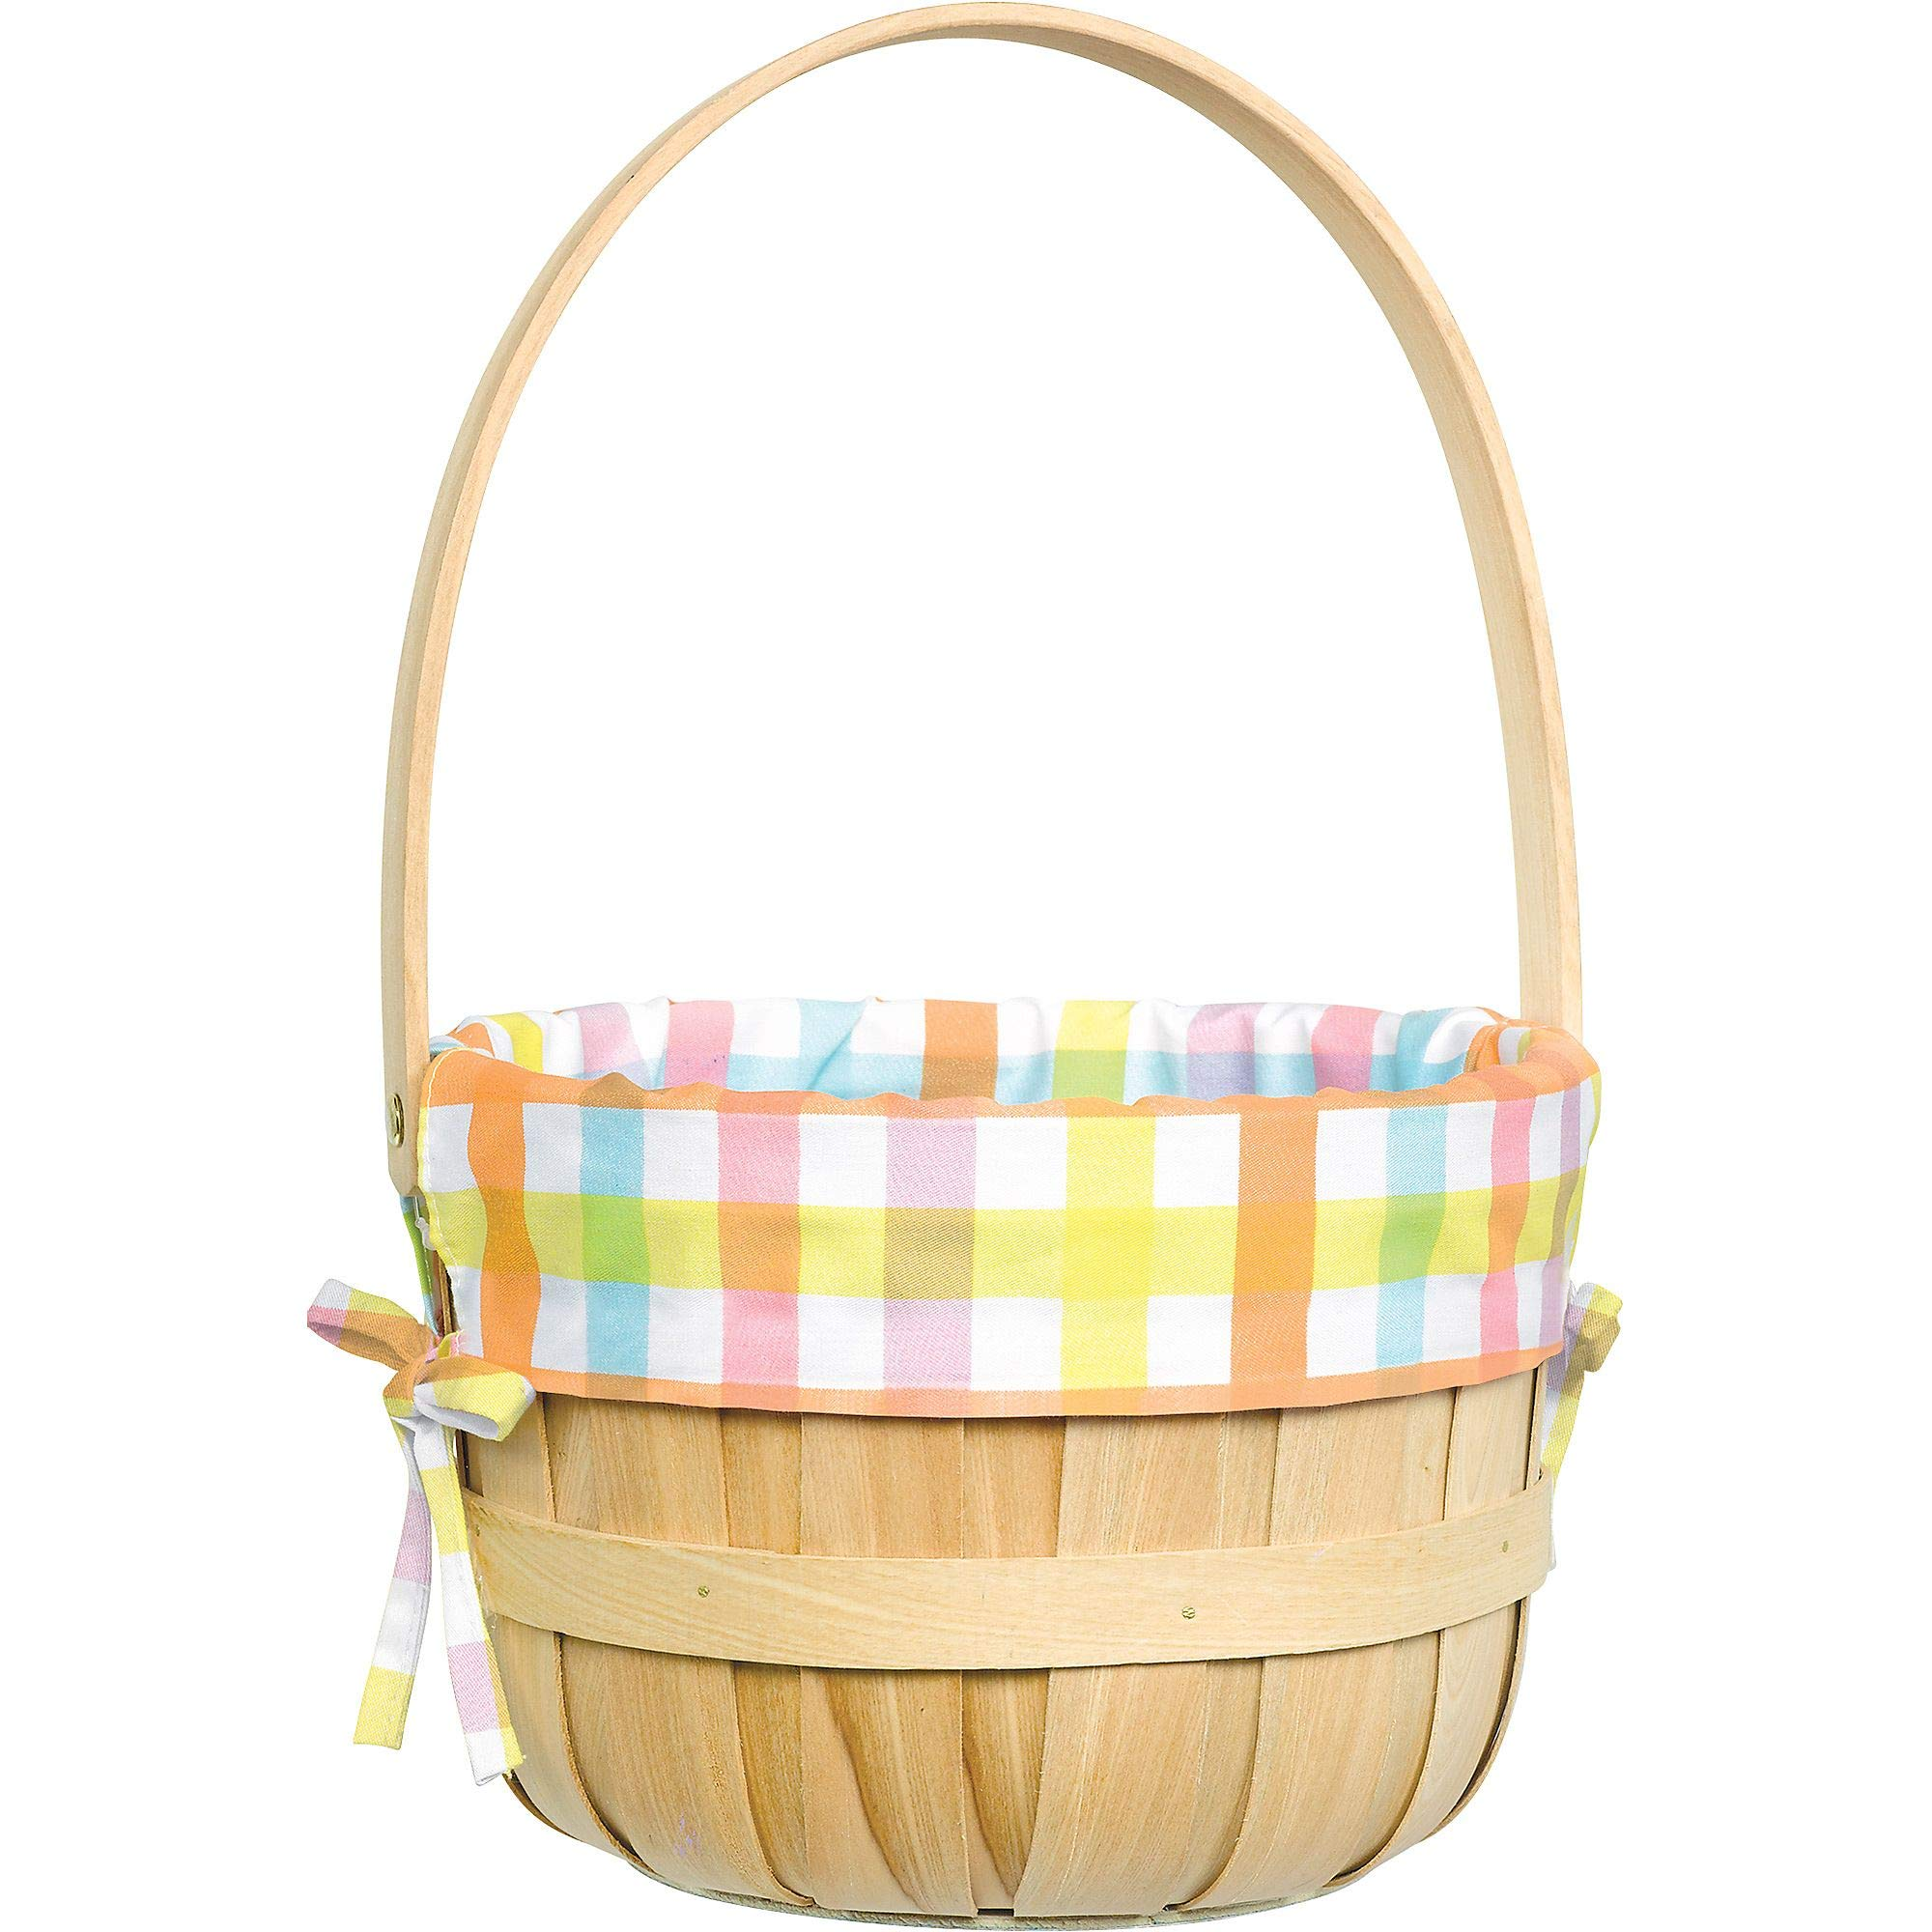 Amscan Round Pastel Plaid Liner Easter Basket 9 1/4 x 14 Inches